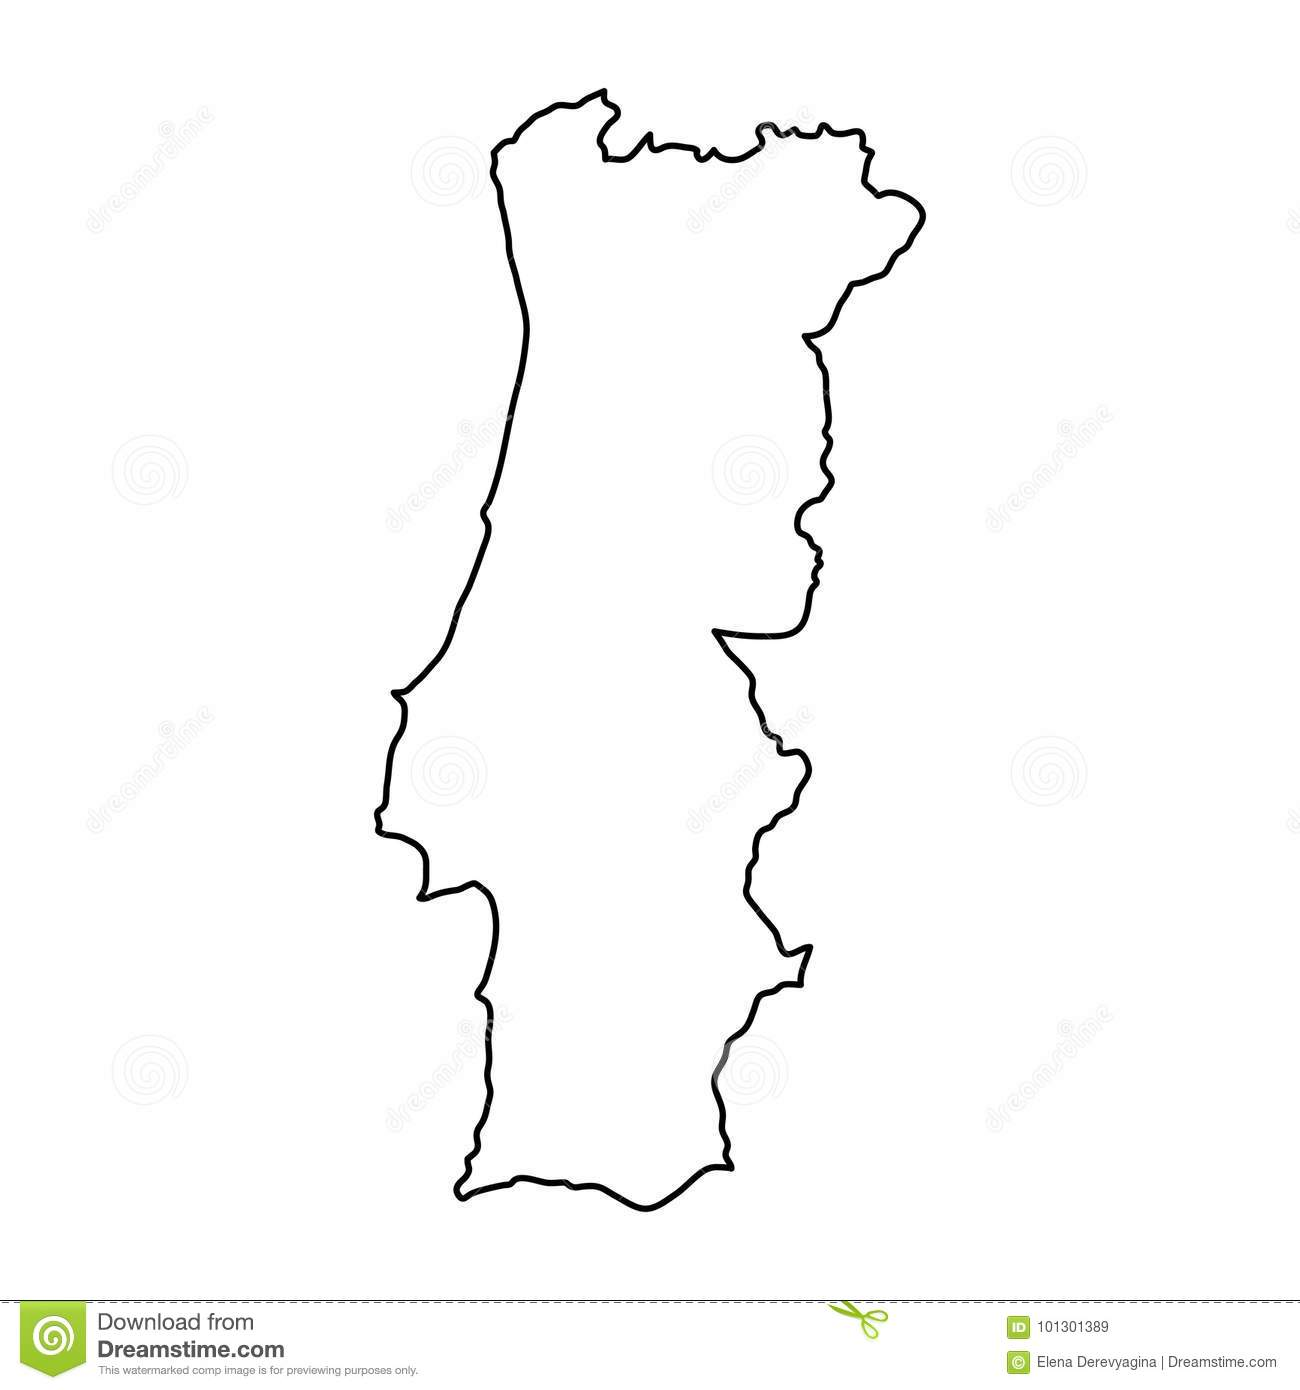 mapa de portugal vectorizado Portugal Map Of Black Contour Curves, Vector Illustration Stock  mapa de portugal vectorizado